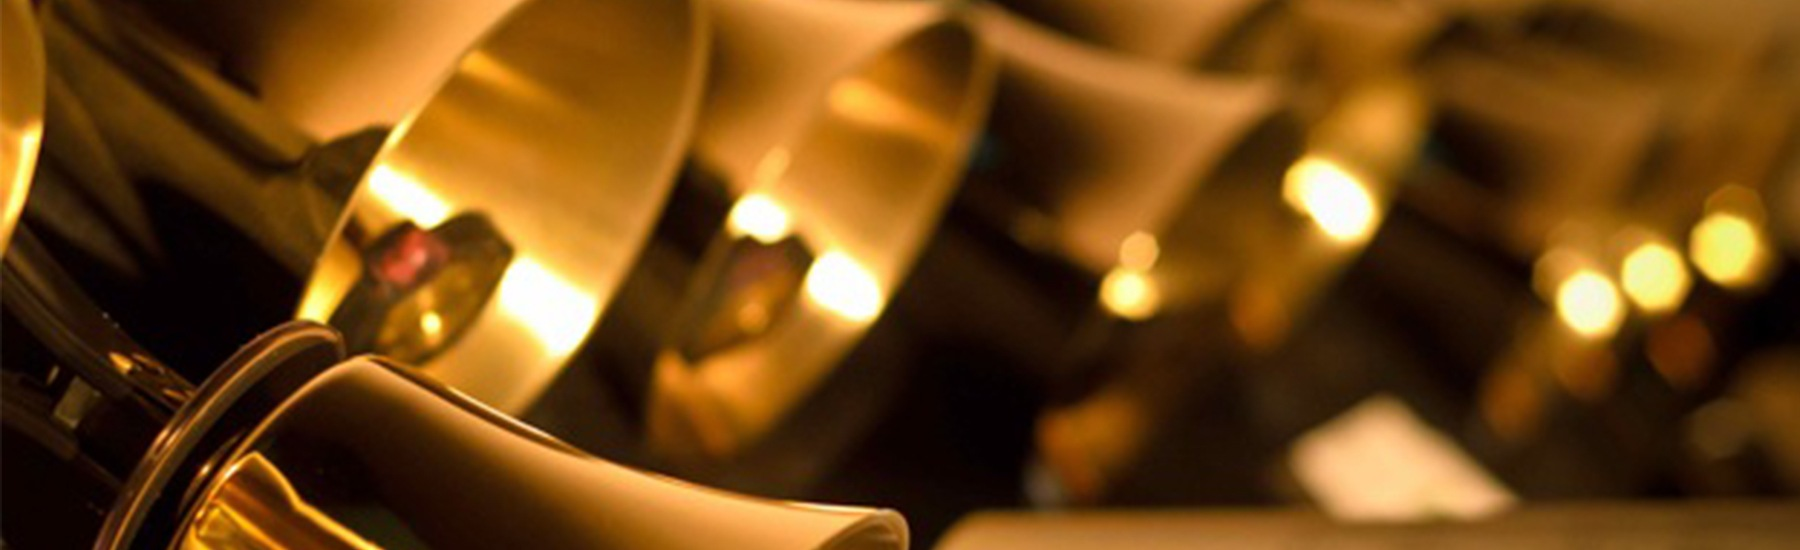 Music : Handbell Choirs